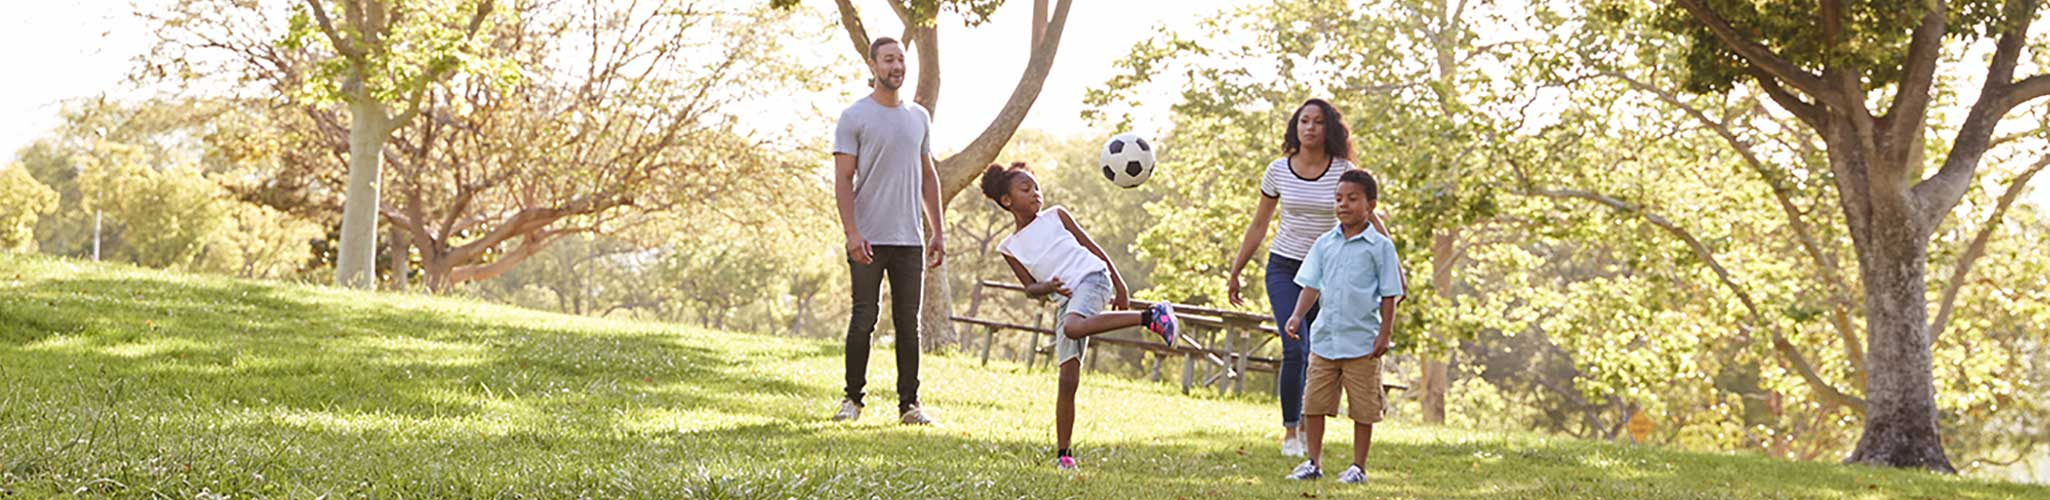 Young family playing soccer in a park.